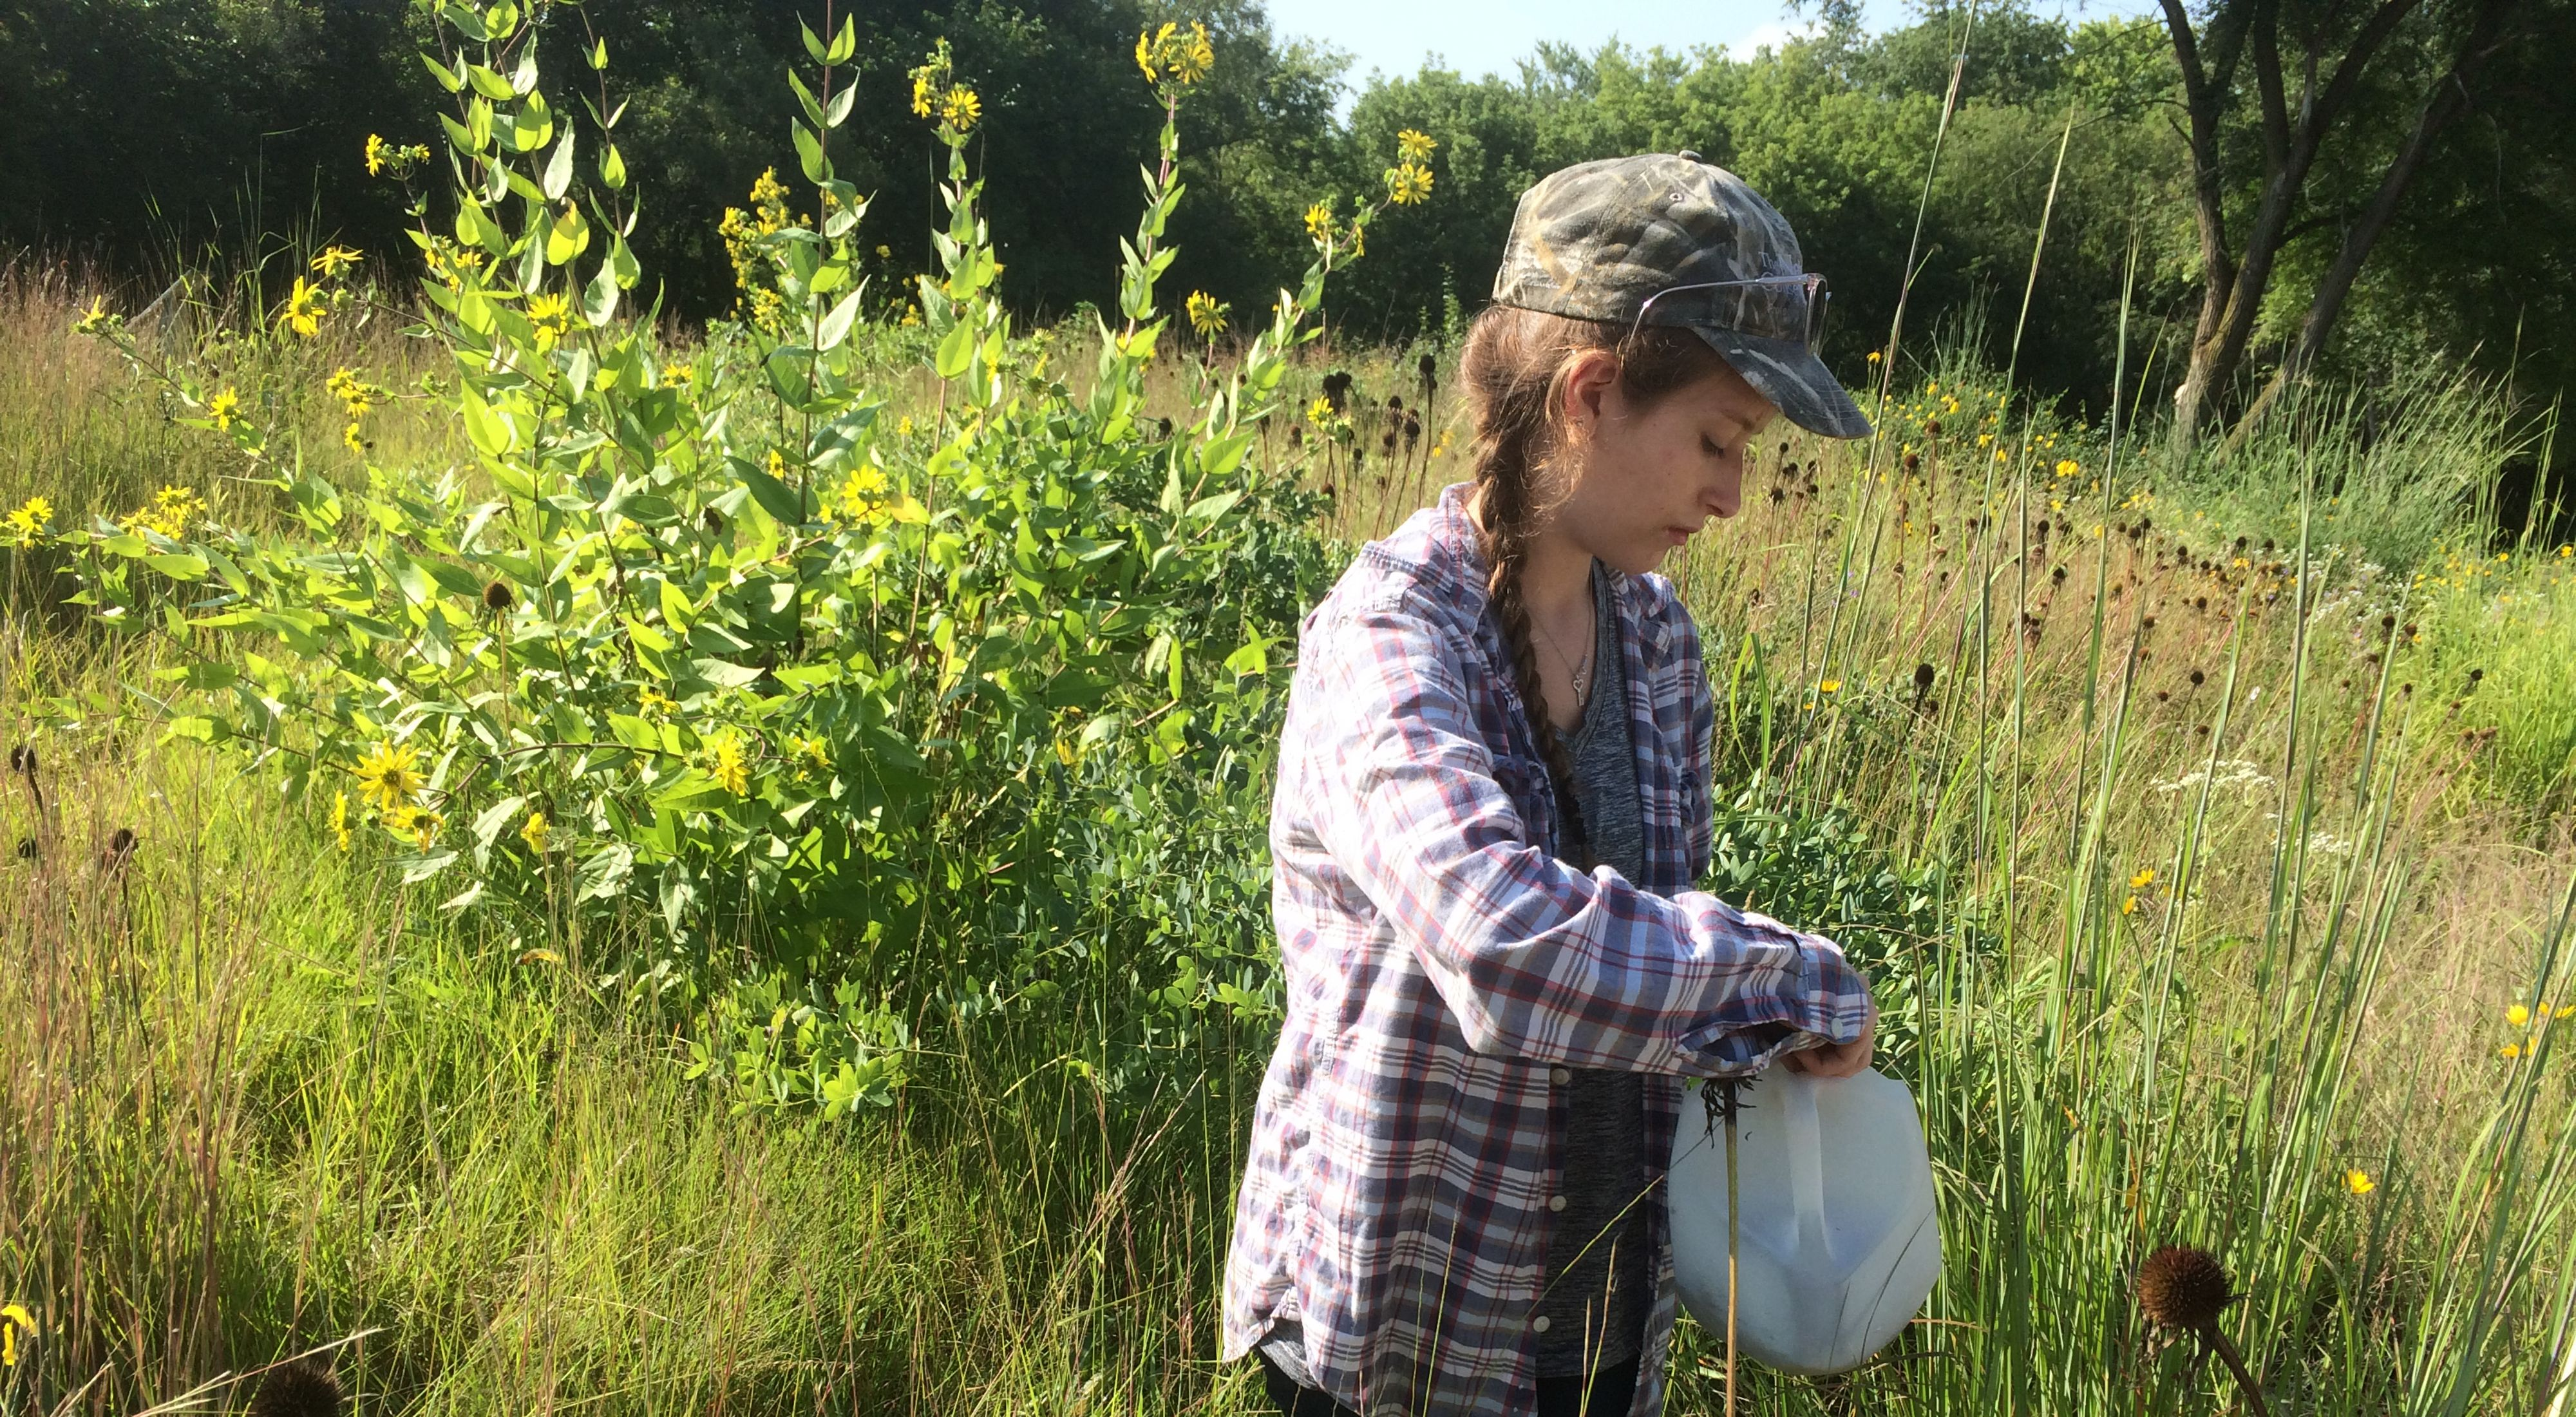 Young woman wearing cap and plaid shirt stands in a prairie and collects prairie grass seed and puts it into a while gallon milk jug.